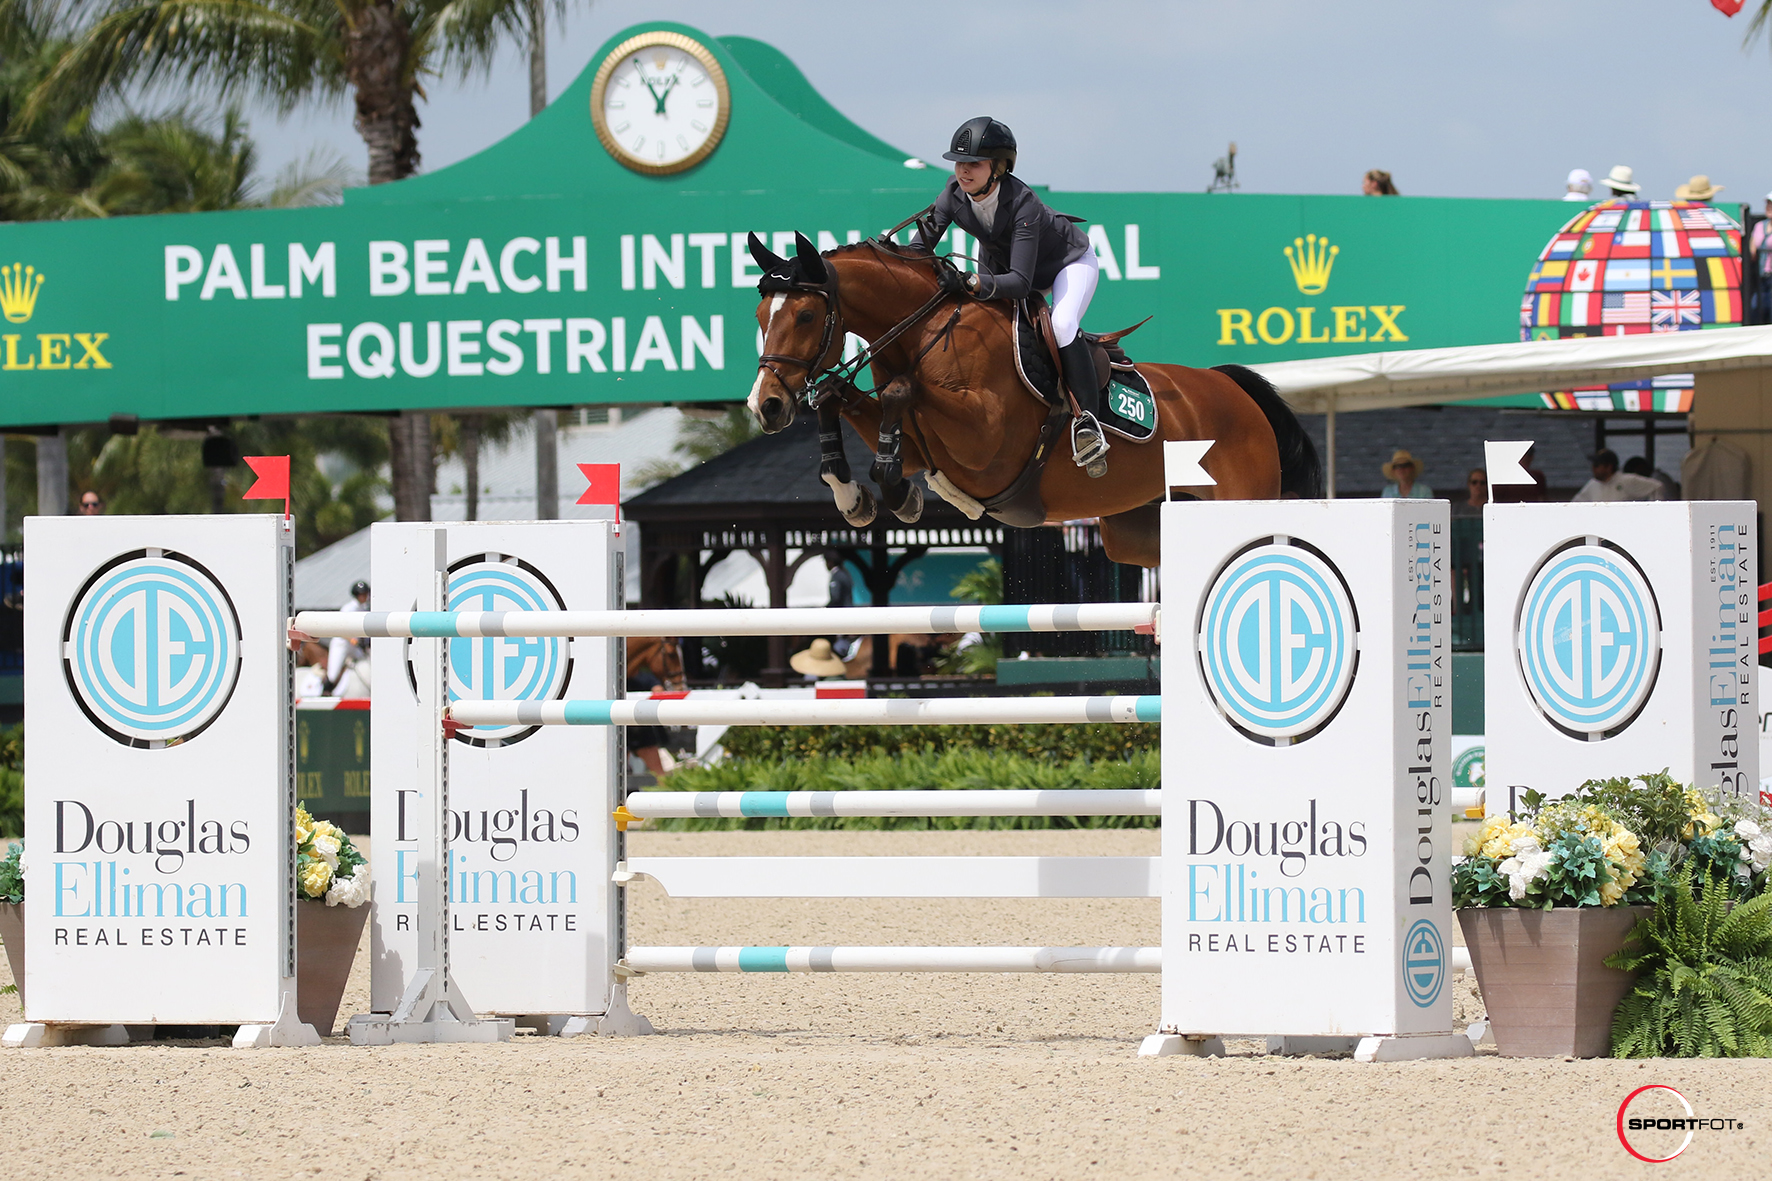 Abigail McArdle and Victorio 5 by Sportfot 540_3995